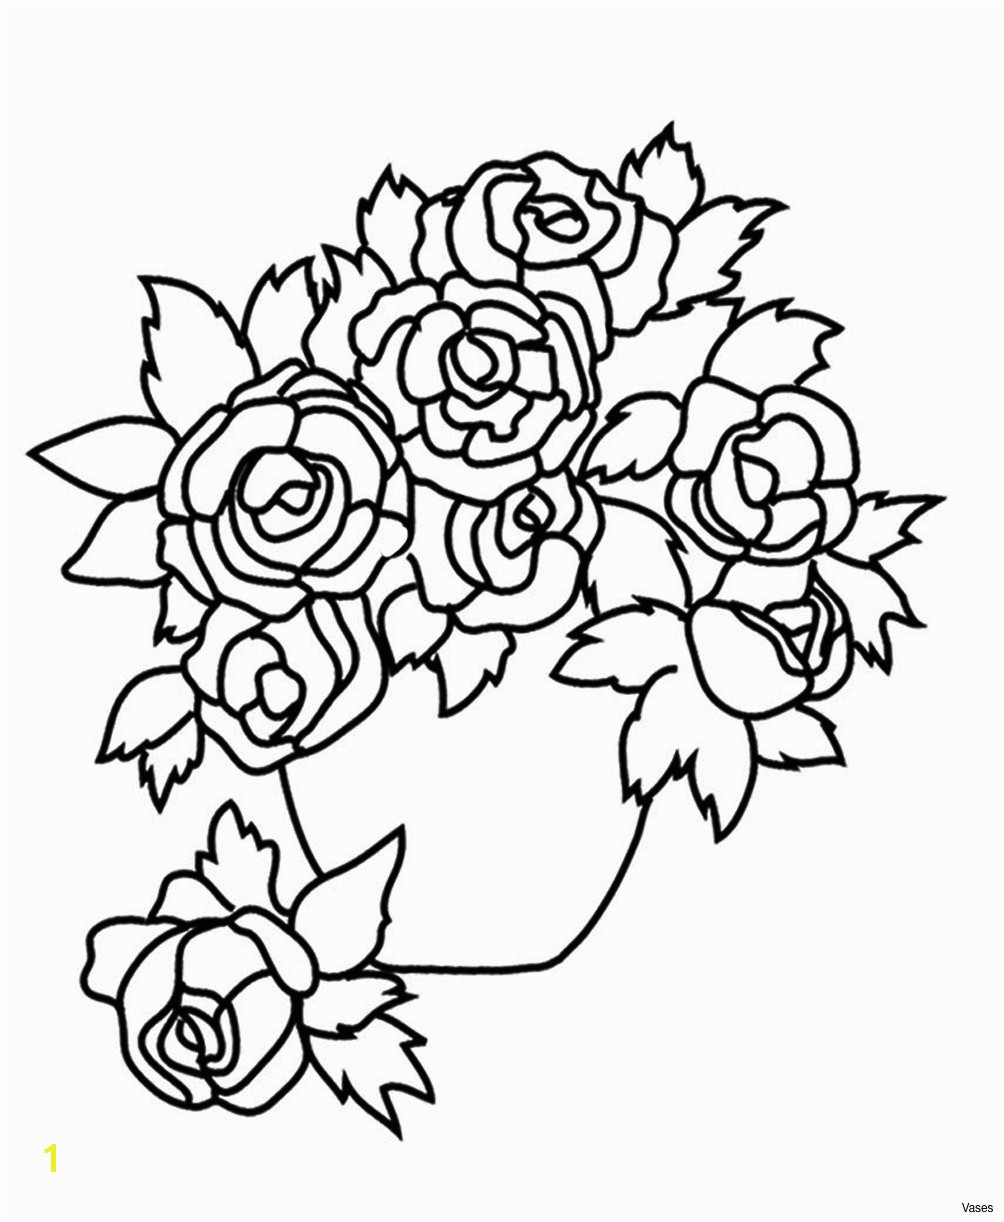 Coloring Book Flowers New Coloring Book Image New Sol R Coloring Pages Best 0d